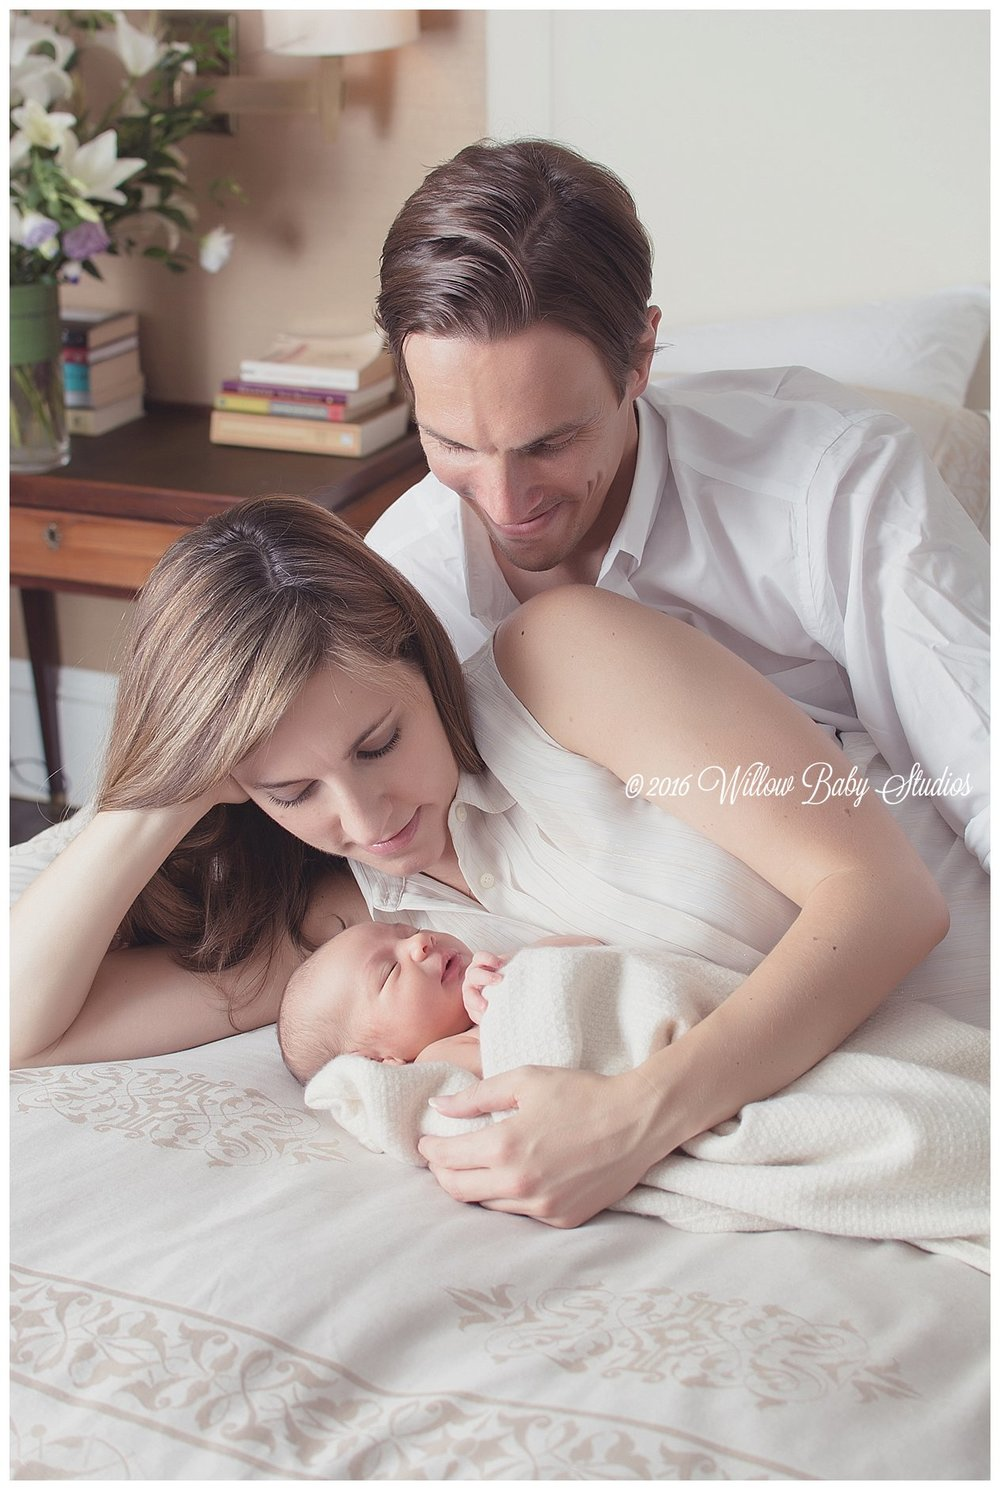 new-family-laying-on-bed-with-parents-gazing-lovingly-at-newborn